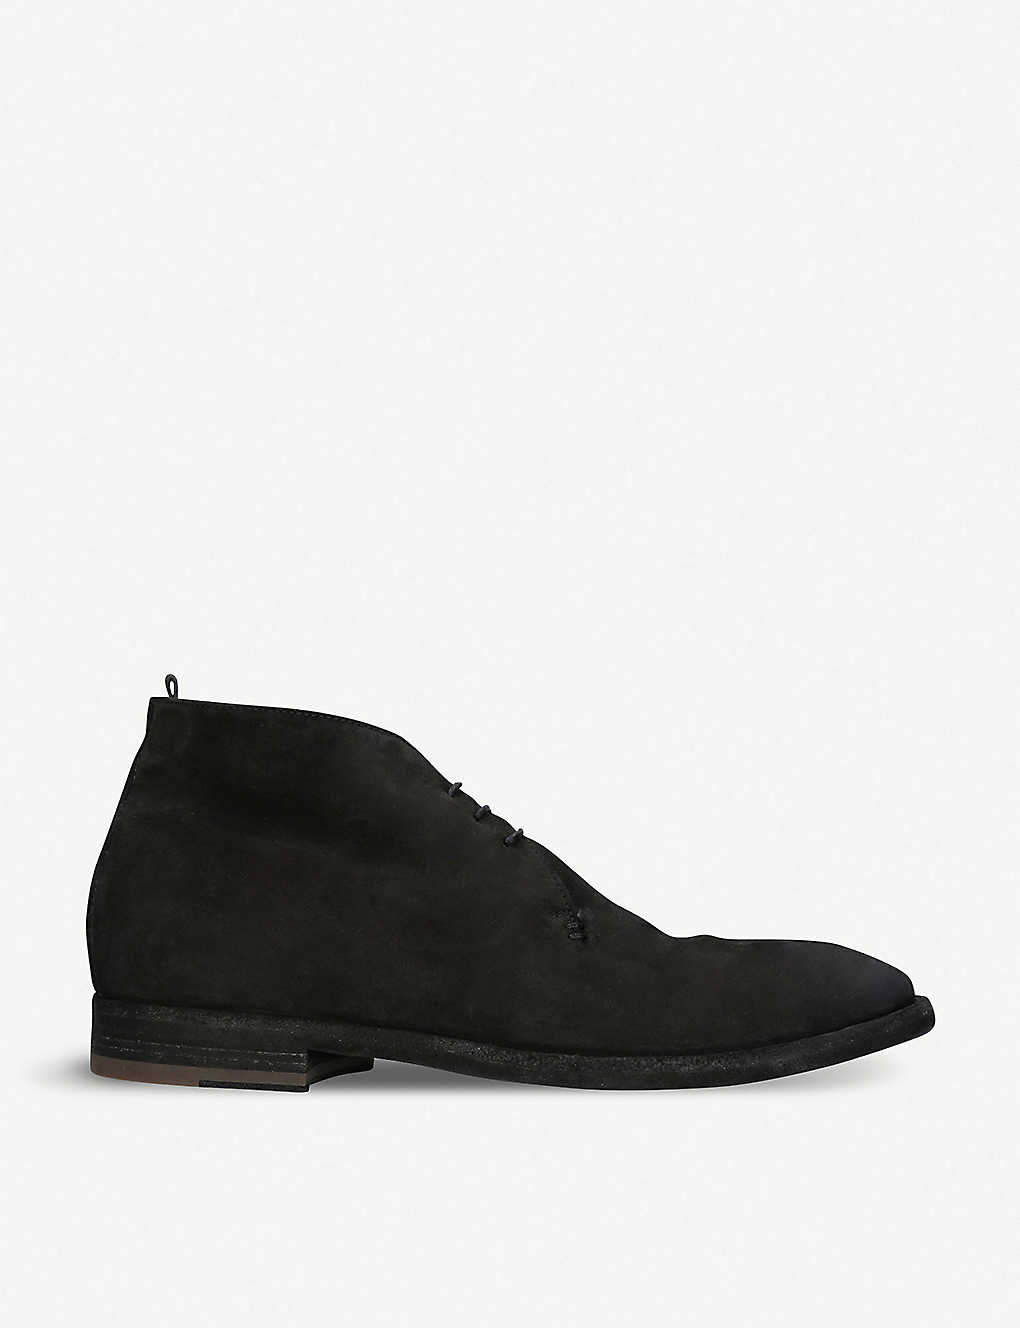 OFFICINE CREATIVE: 3-eye leather desert boots